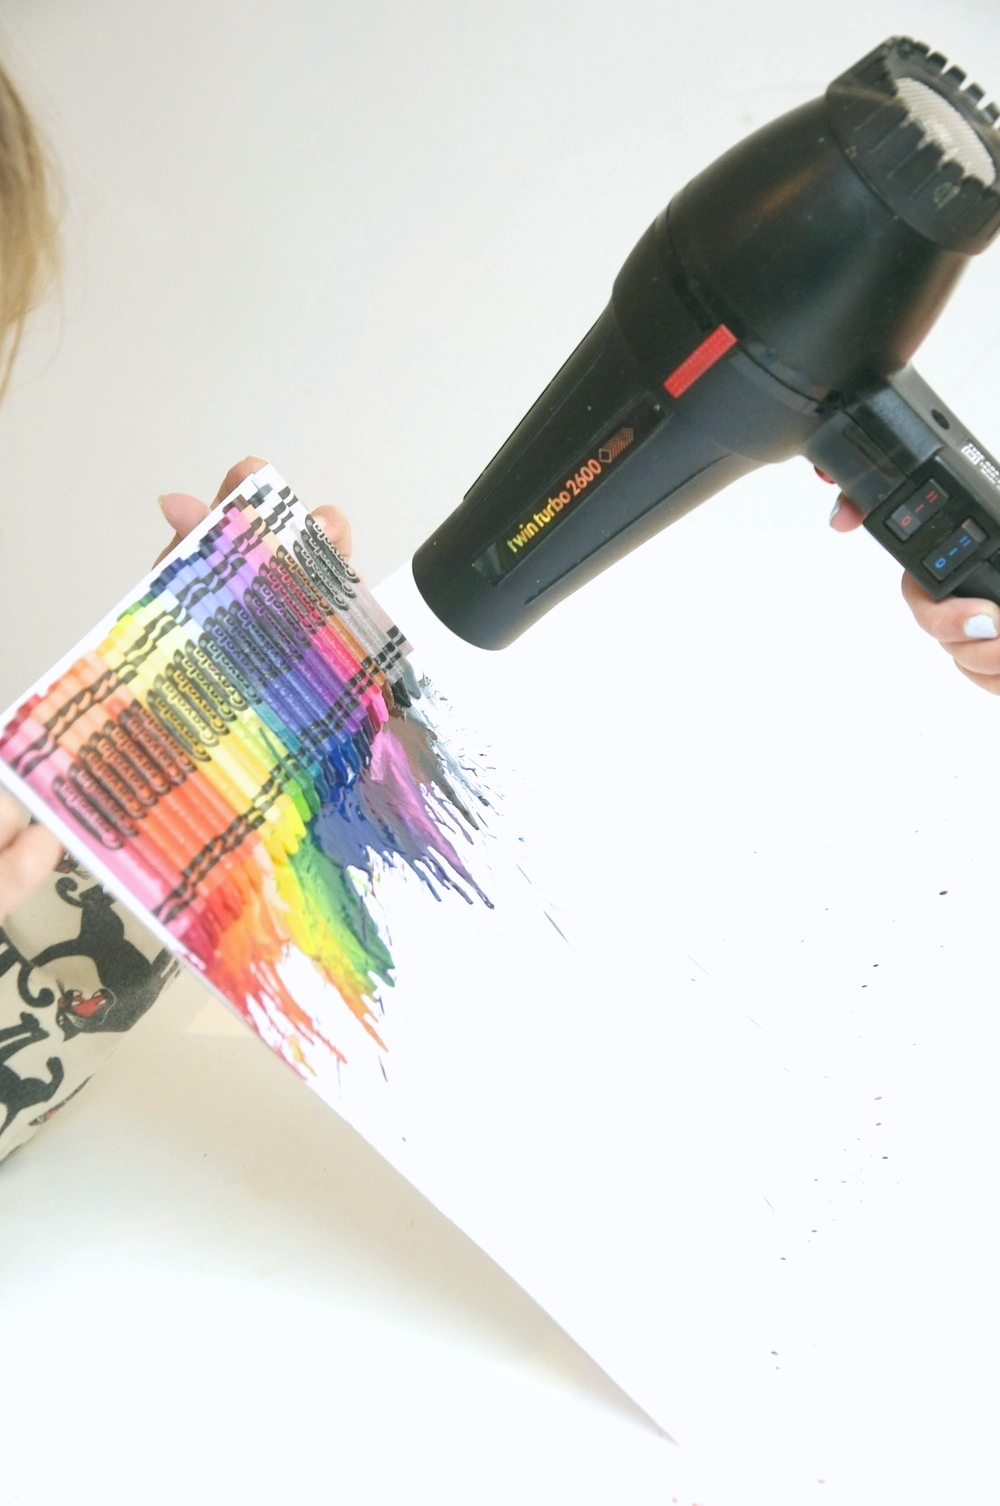 Hairdryer_crayon_melt_rainbow